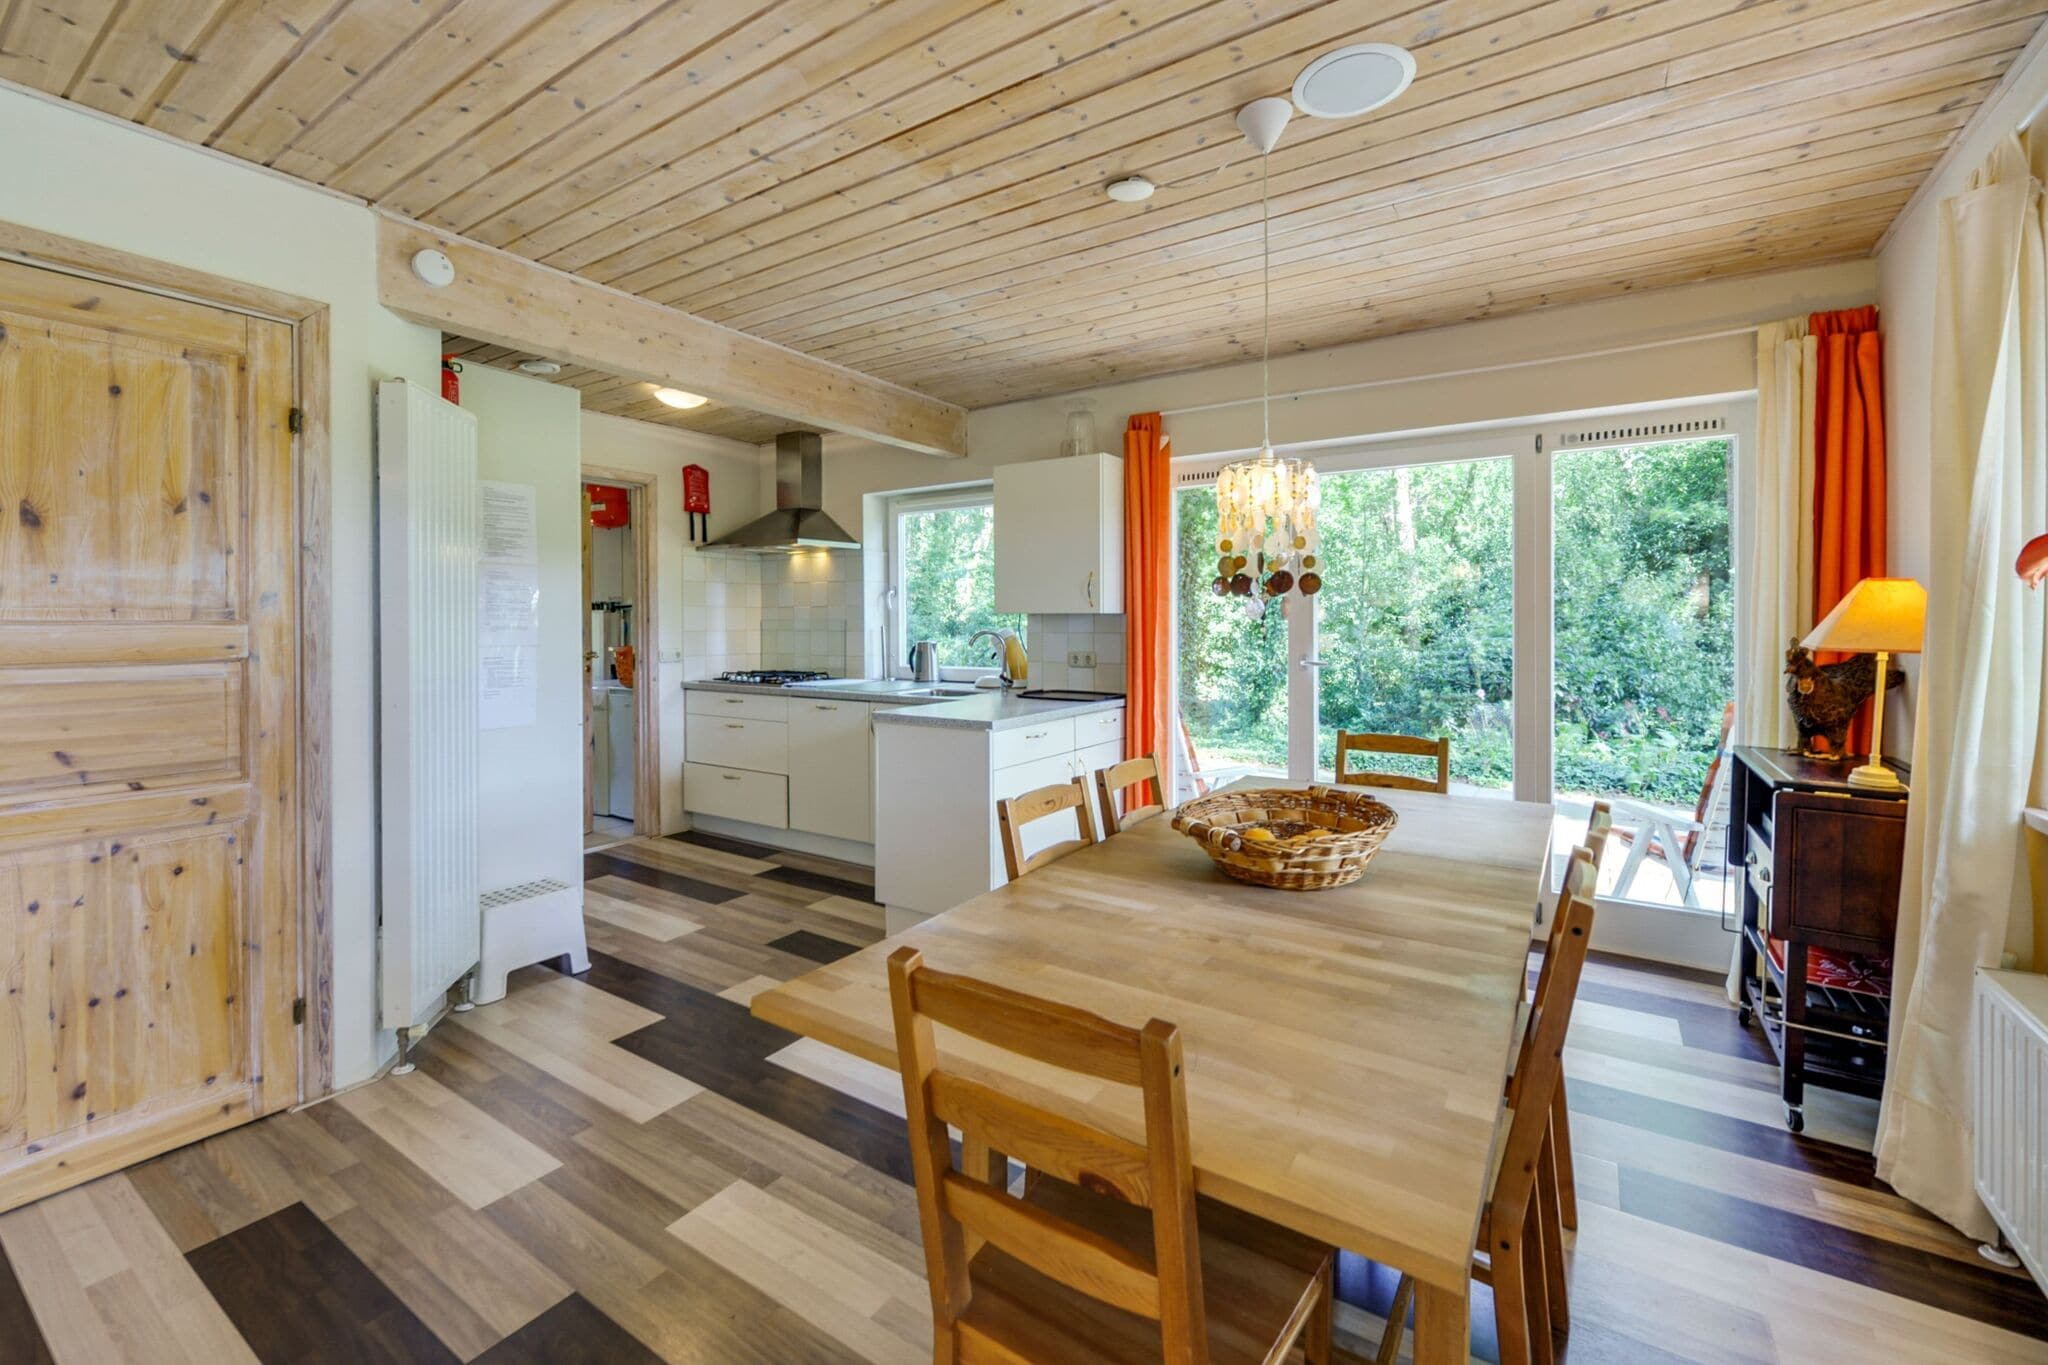 Alluring Holiday Home in Norg with Sauna, Terrace, Garden